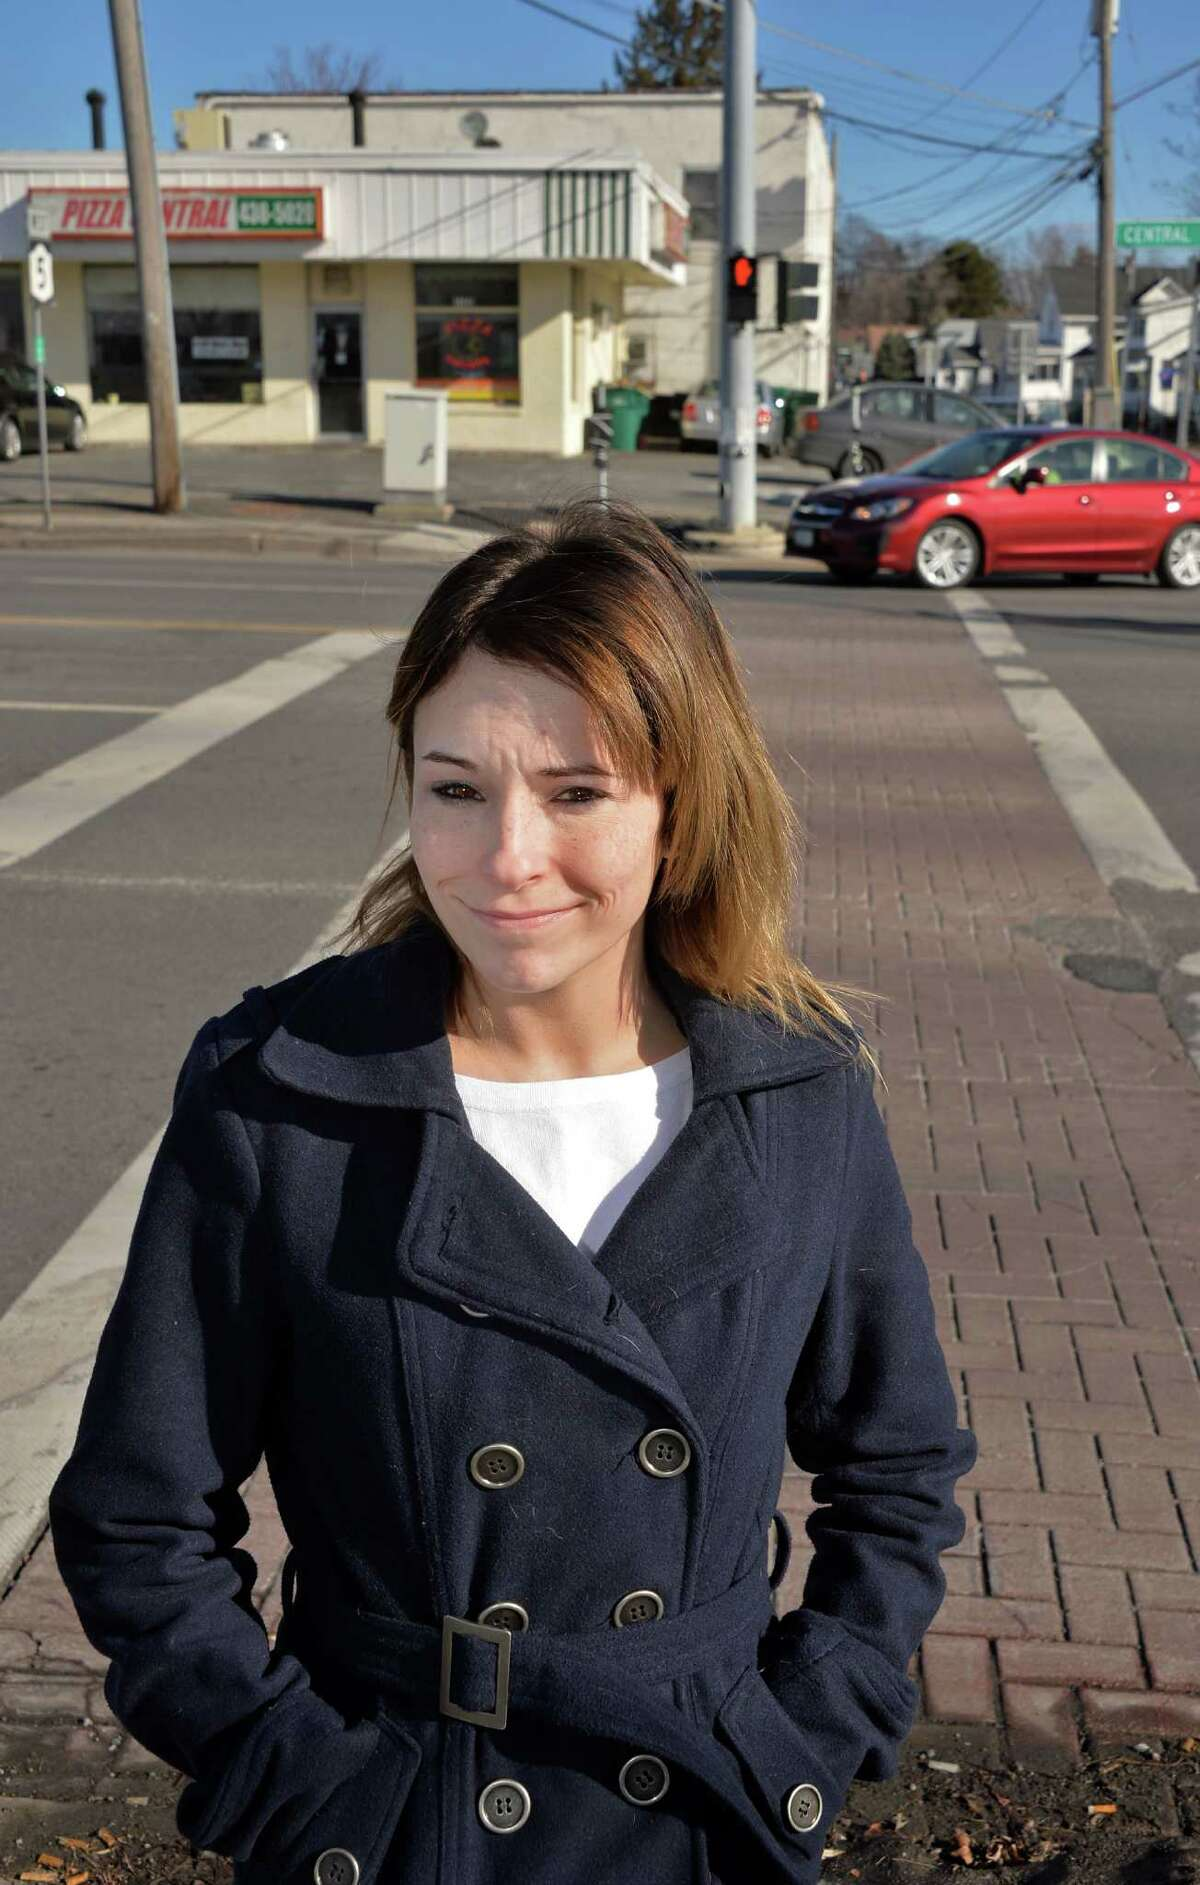 Misty Kinner recounts being struck by a car while crossing Central Avenue at the corner of Central Avenue and Osborne Road during an interview there Tuesday Feb. 2, 2016 in Colonie, NY. (John Carl D'Annibale / Times Union)